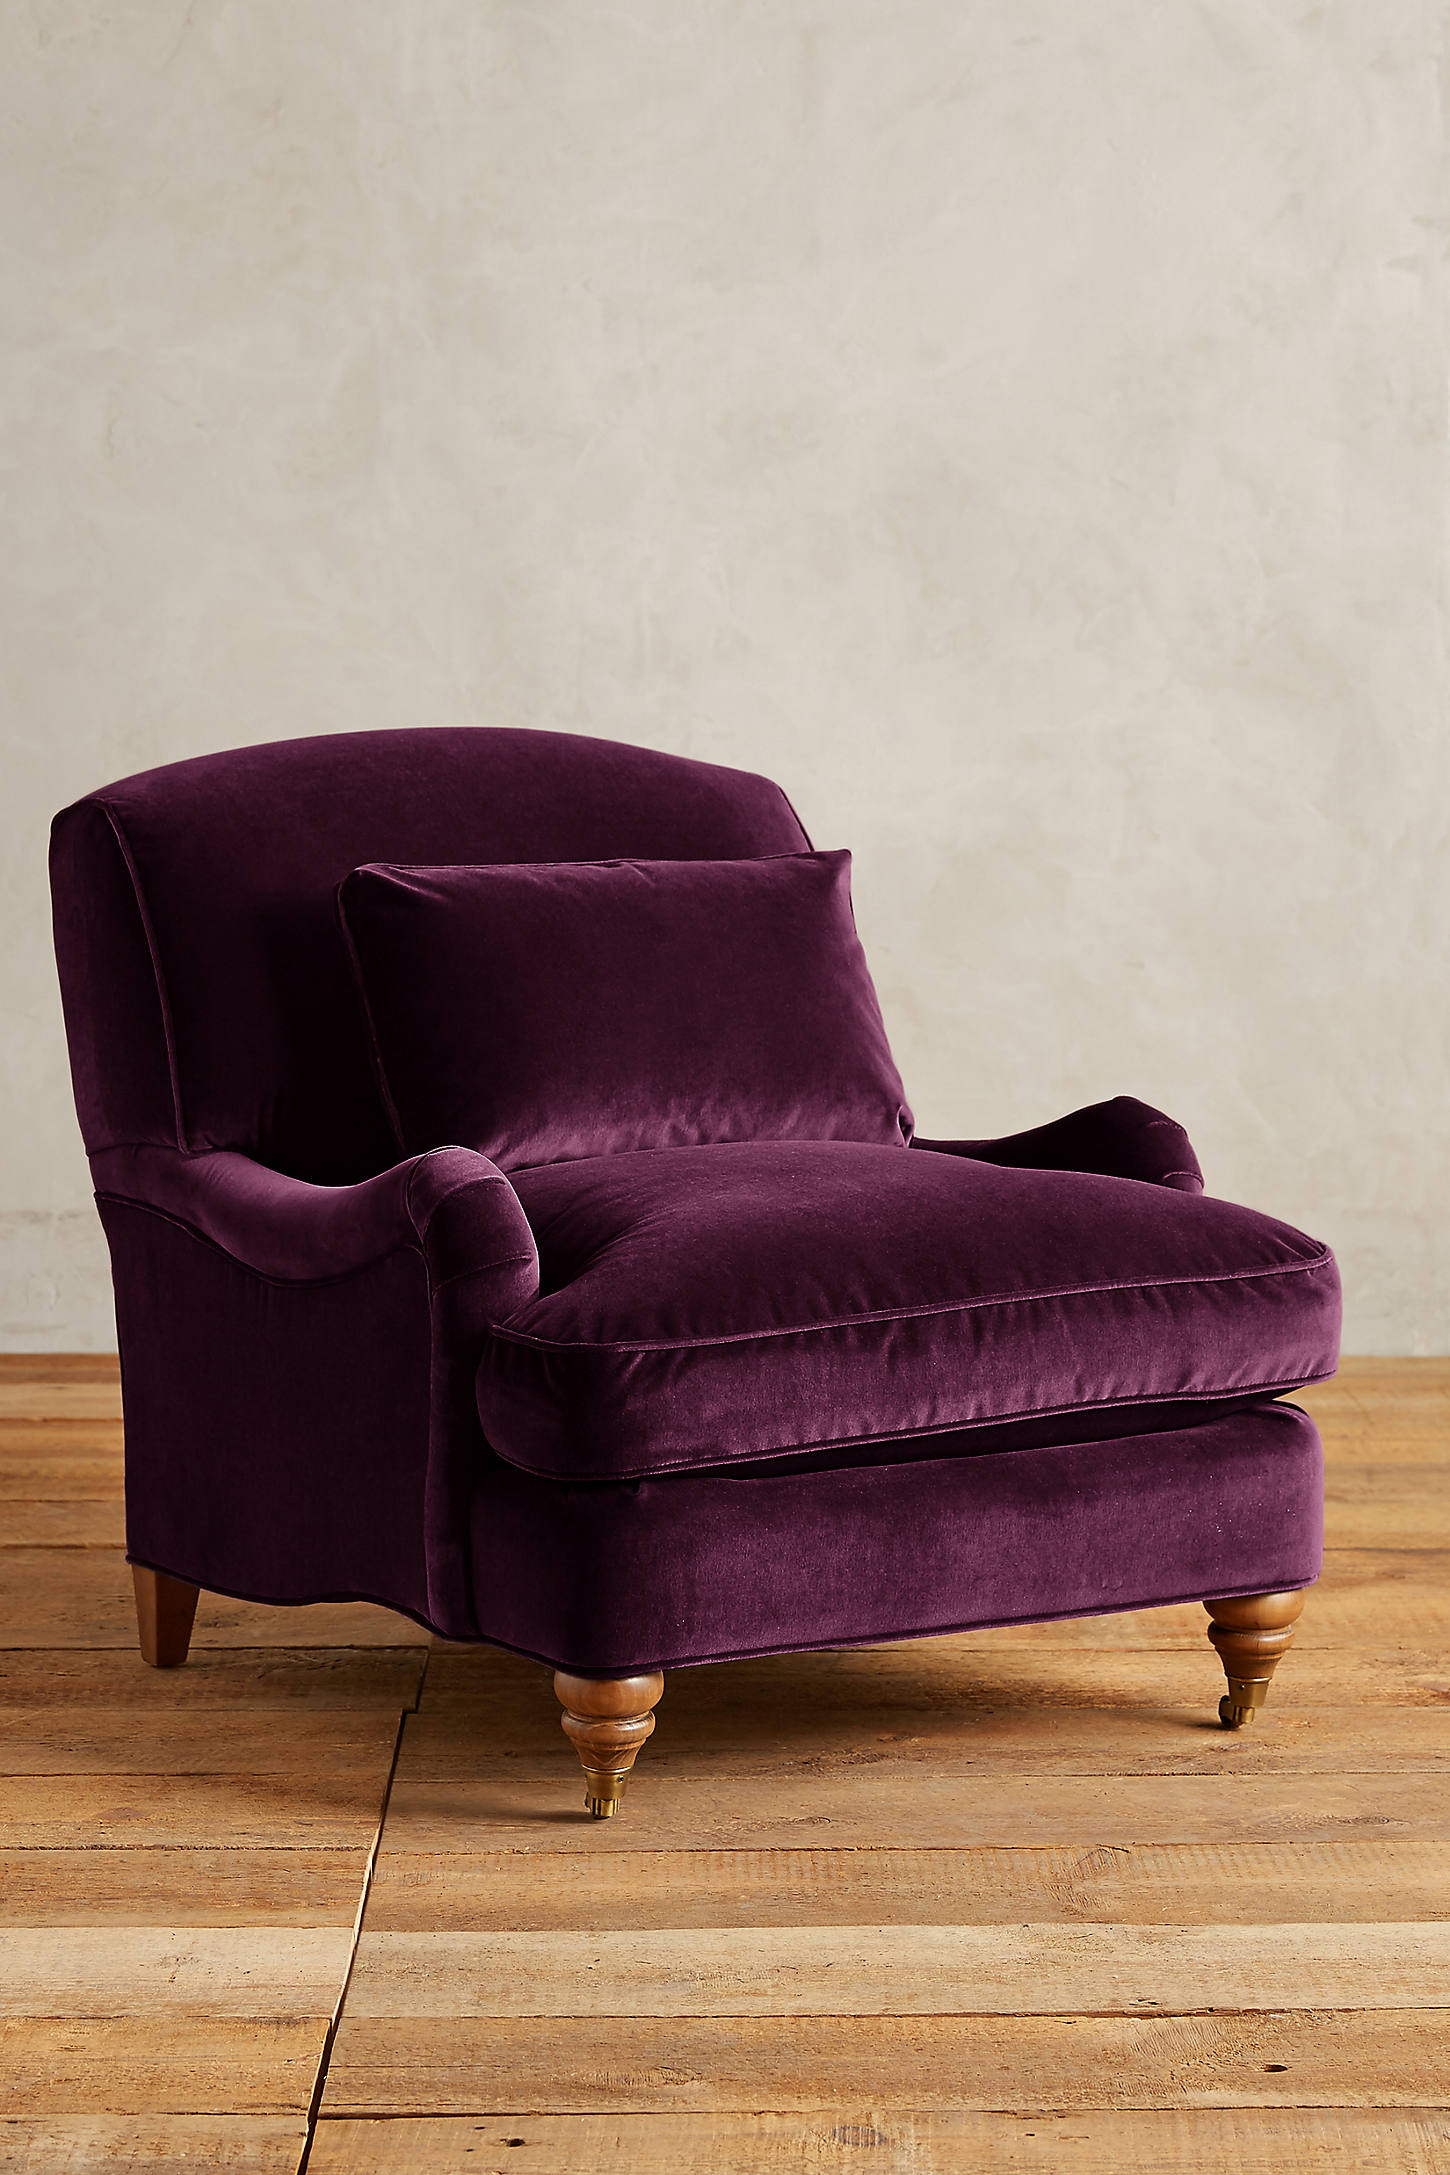 Velvet Glenlee Chair, Landon